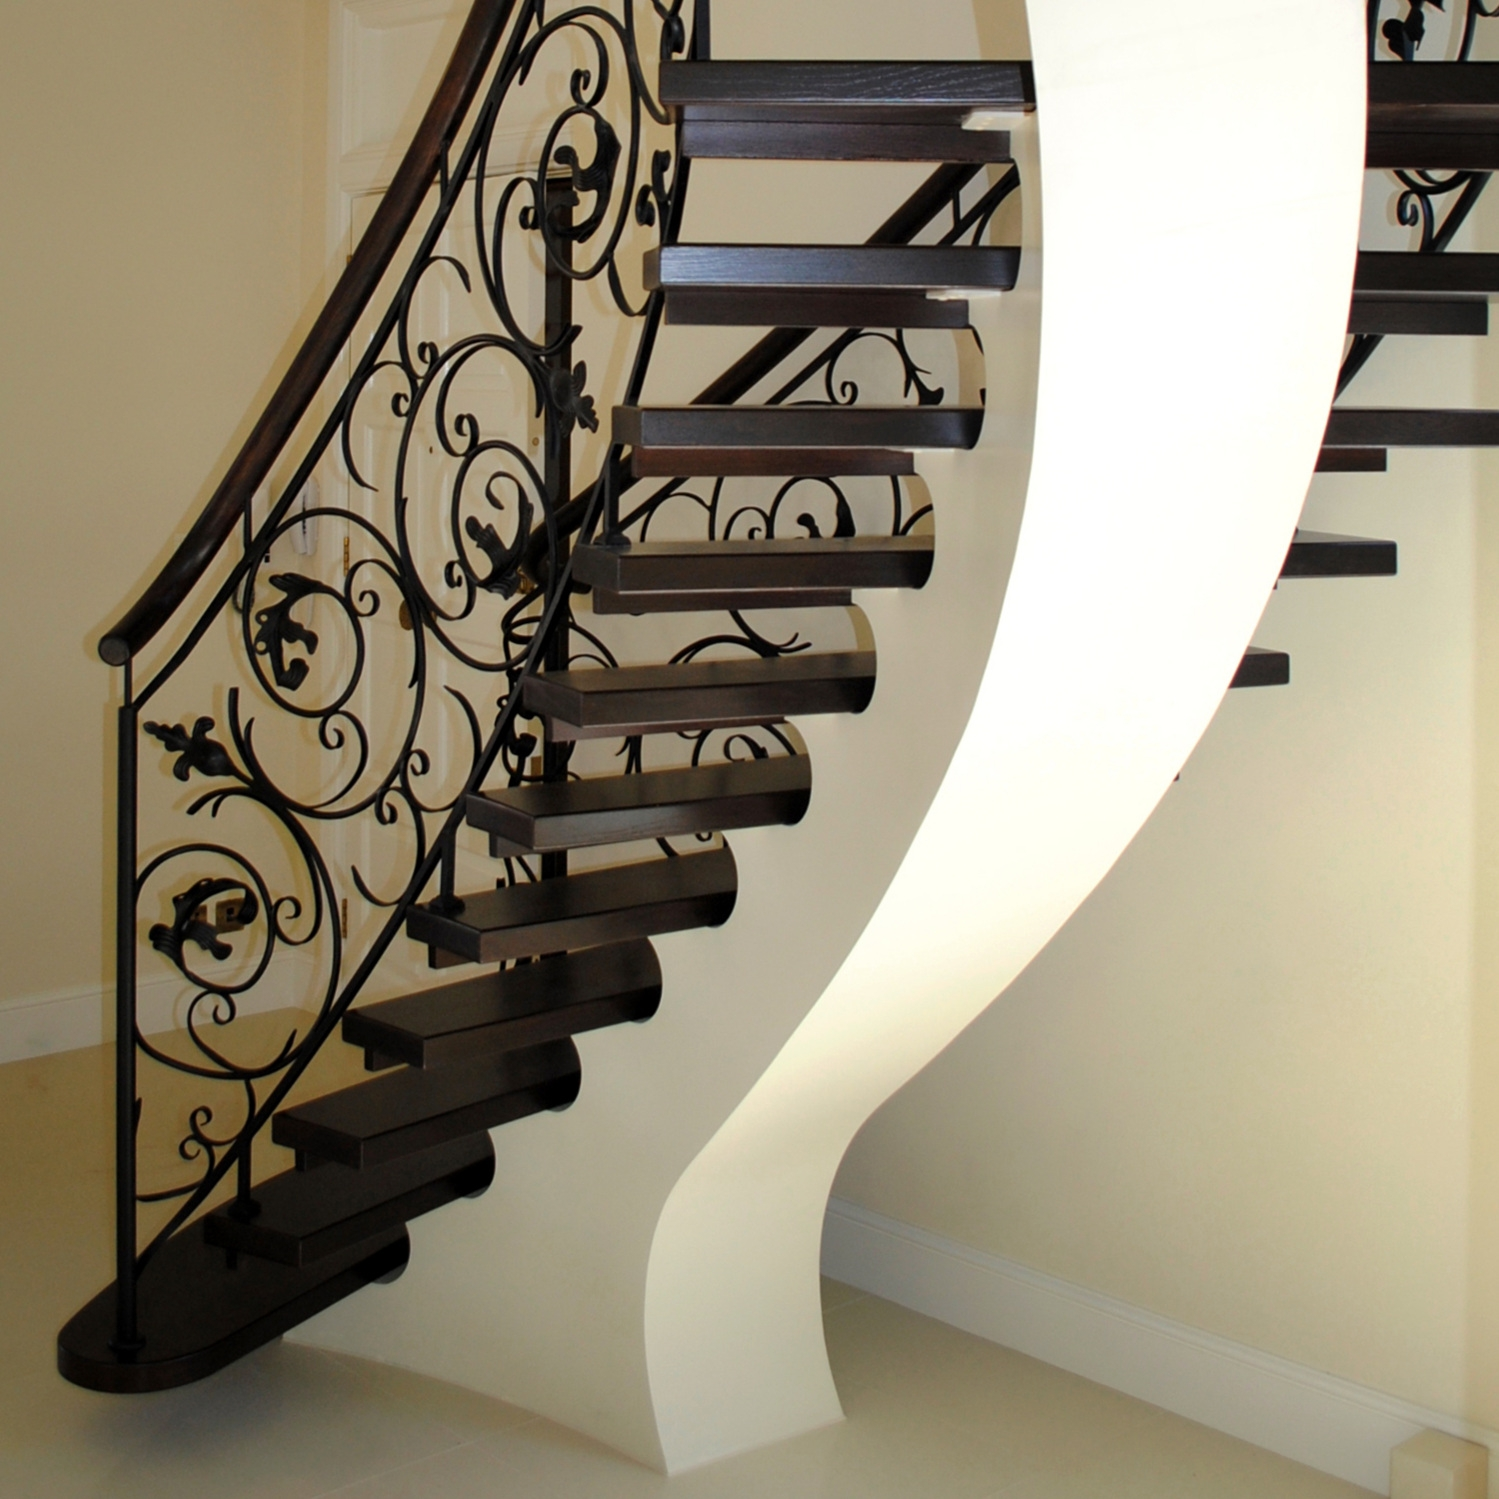 Modern Design Staircases   Exterior Staircase Designs For Indian Homes   Elevation   Indian Style   Combination   Front Entrance Outdoor Staircase   Wall